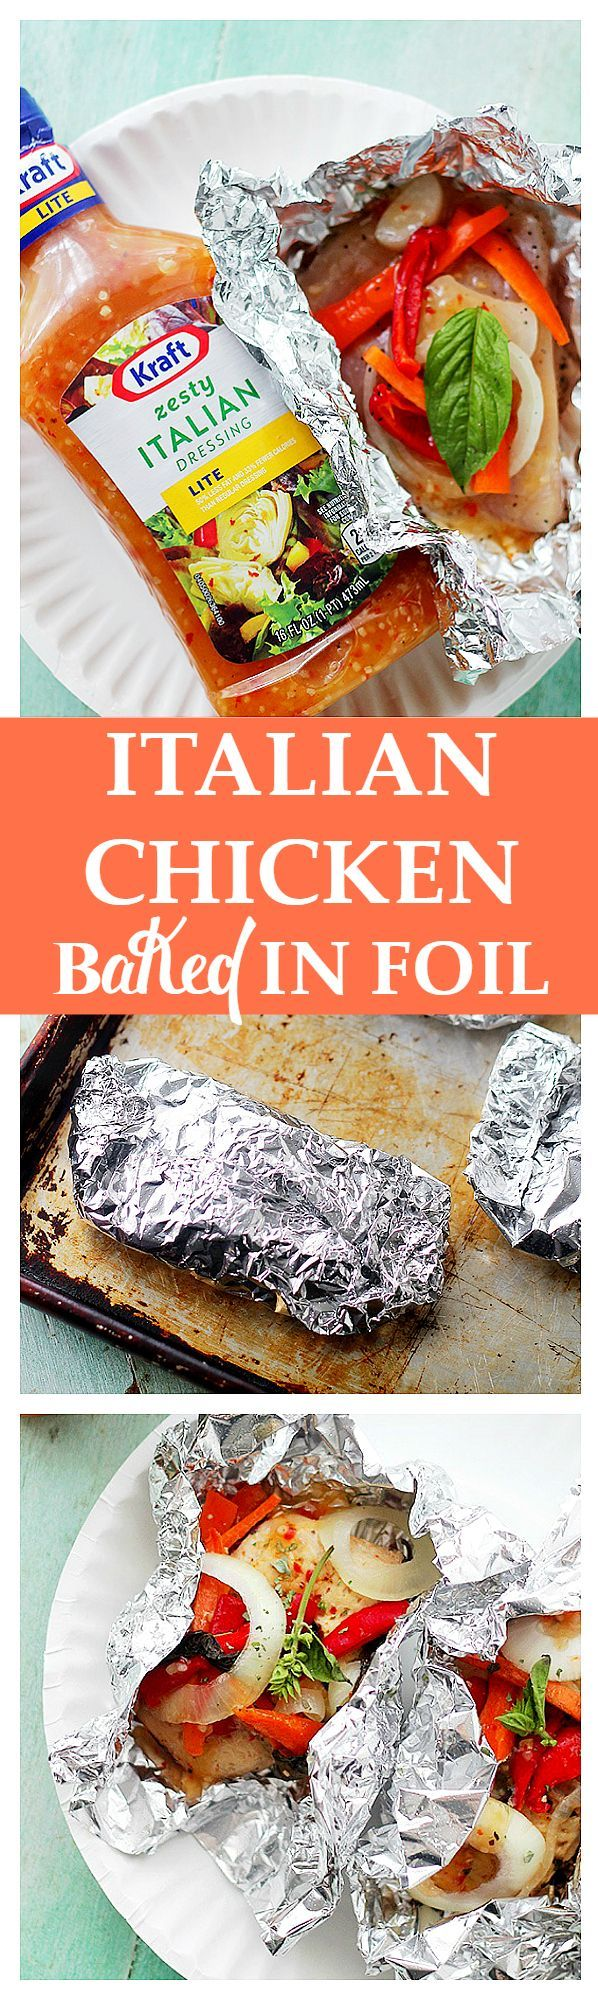 399 best ideas about make the food on pinterest butter for Chicken and vegetables in foil packets recipe